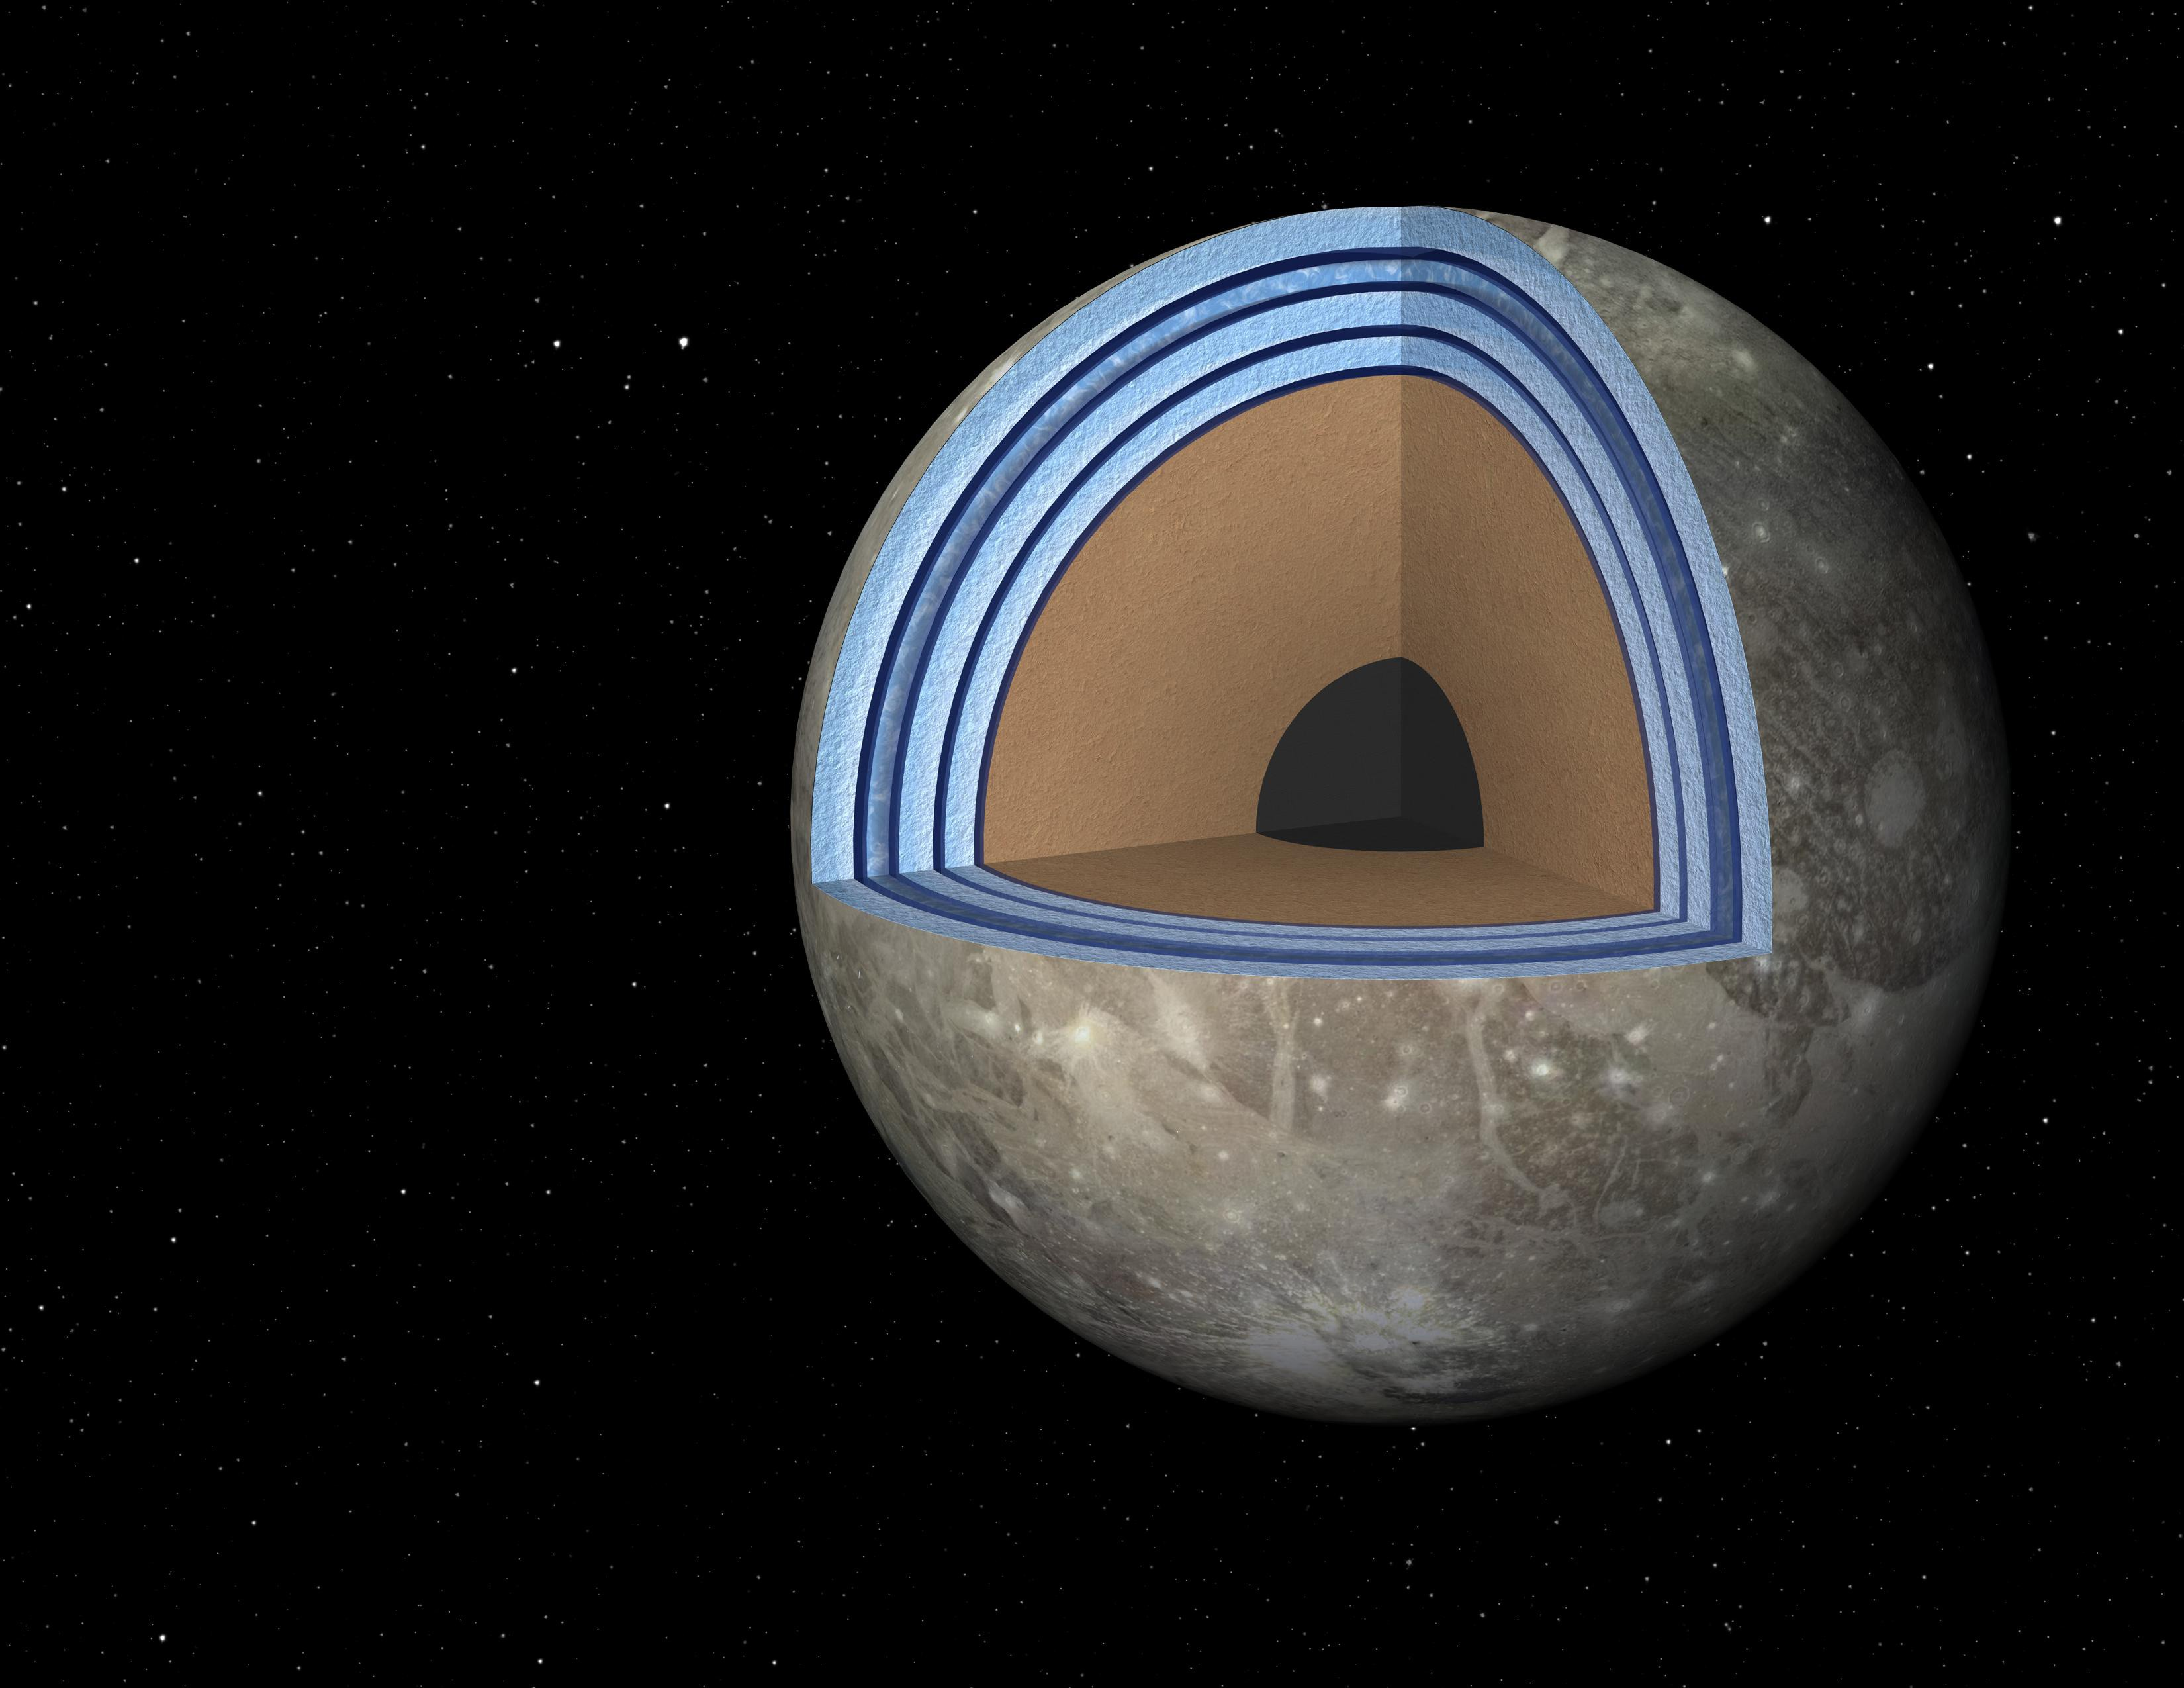 Jupiter moon's layers bring chance of life | The Japan Times